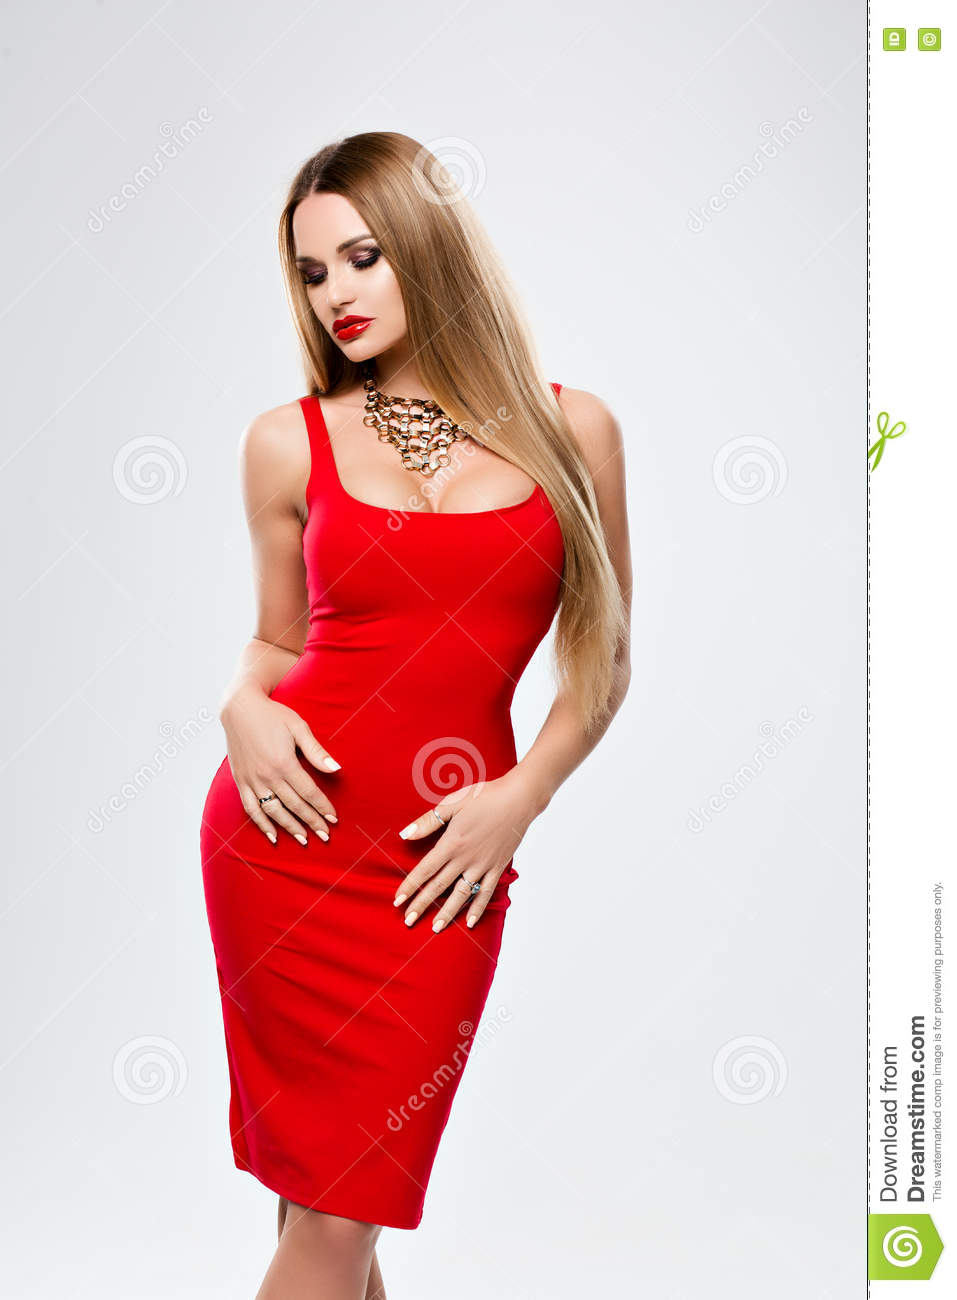 beautiful lady in red dress with bright makeup red lips gorgeous bust a young woman with long. Black Bedroom Furniture Sets. Home Design Ideas